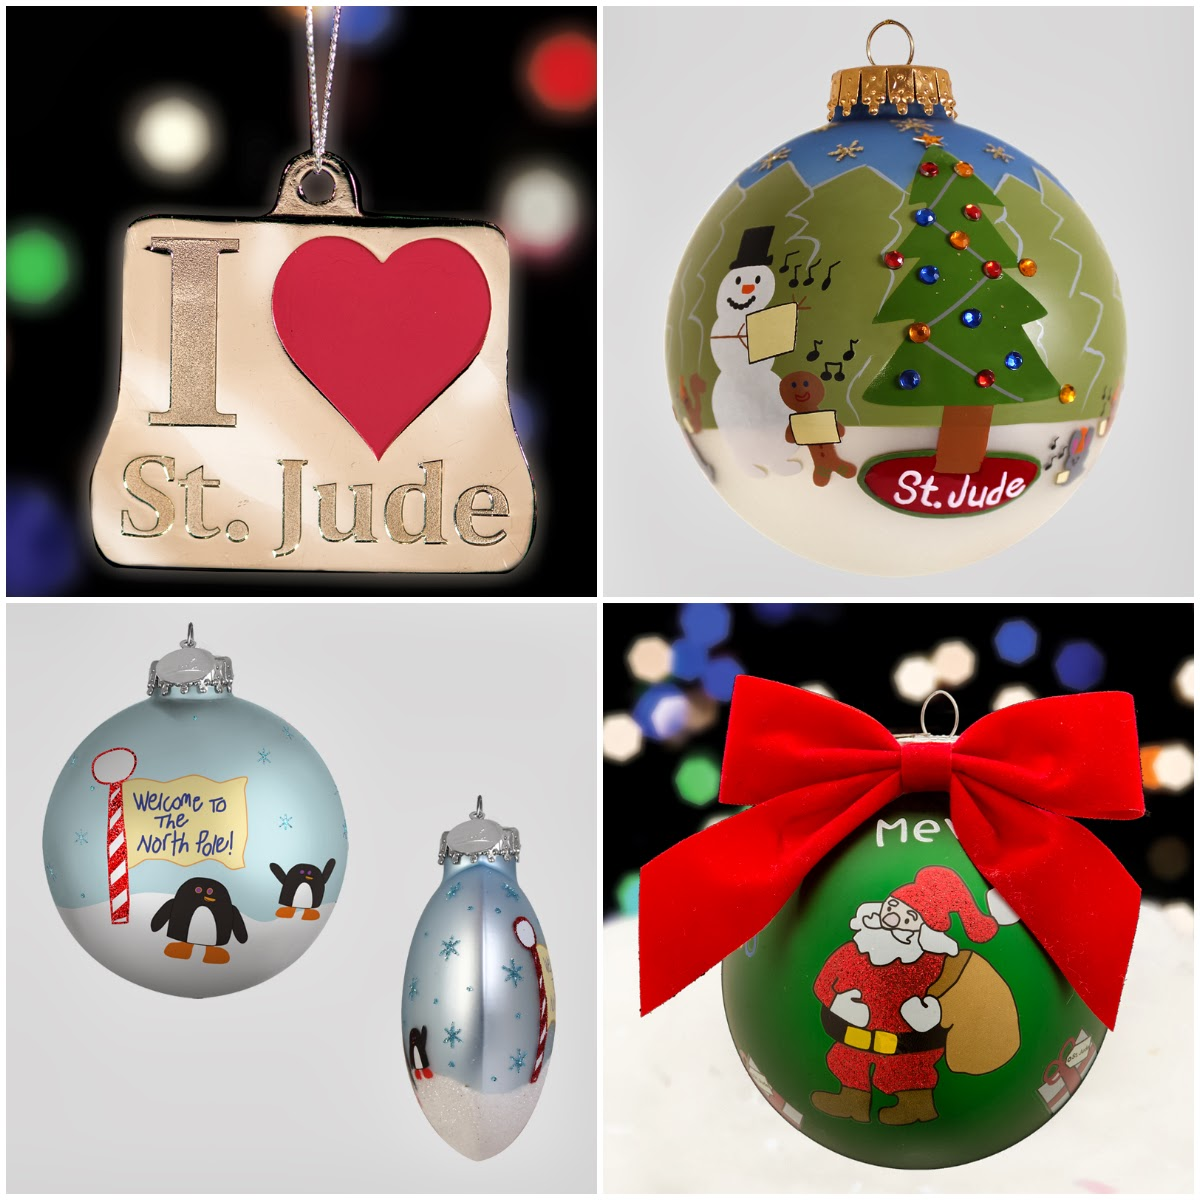 100 Percent Of The Profits, After All Related Expenses, Benefit St Jude  Children's Research Hospital Ornaments  Many Featuring Patient Holiday